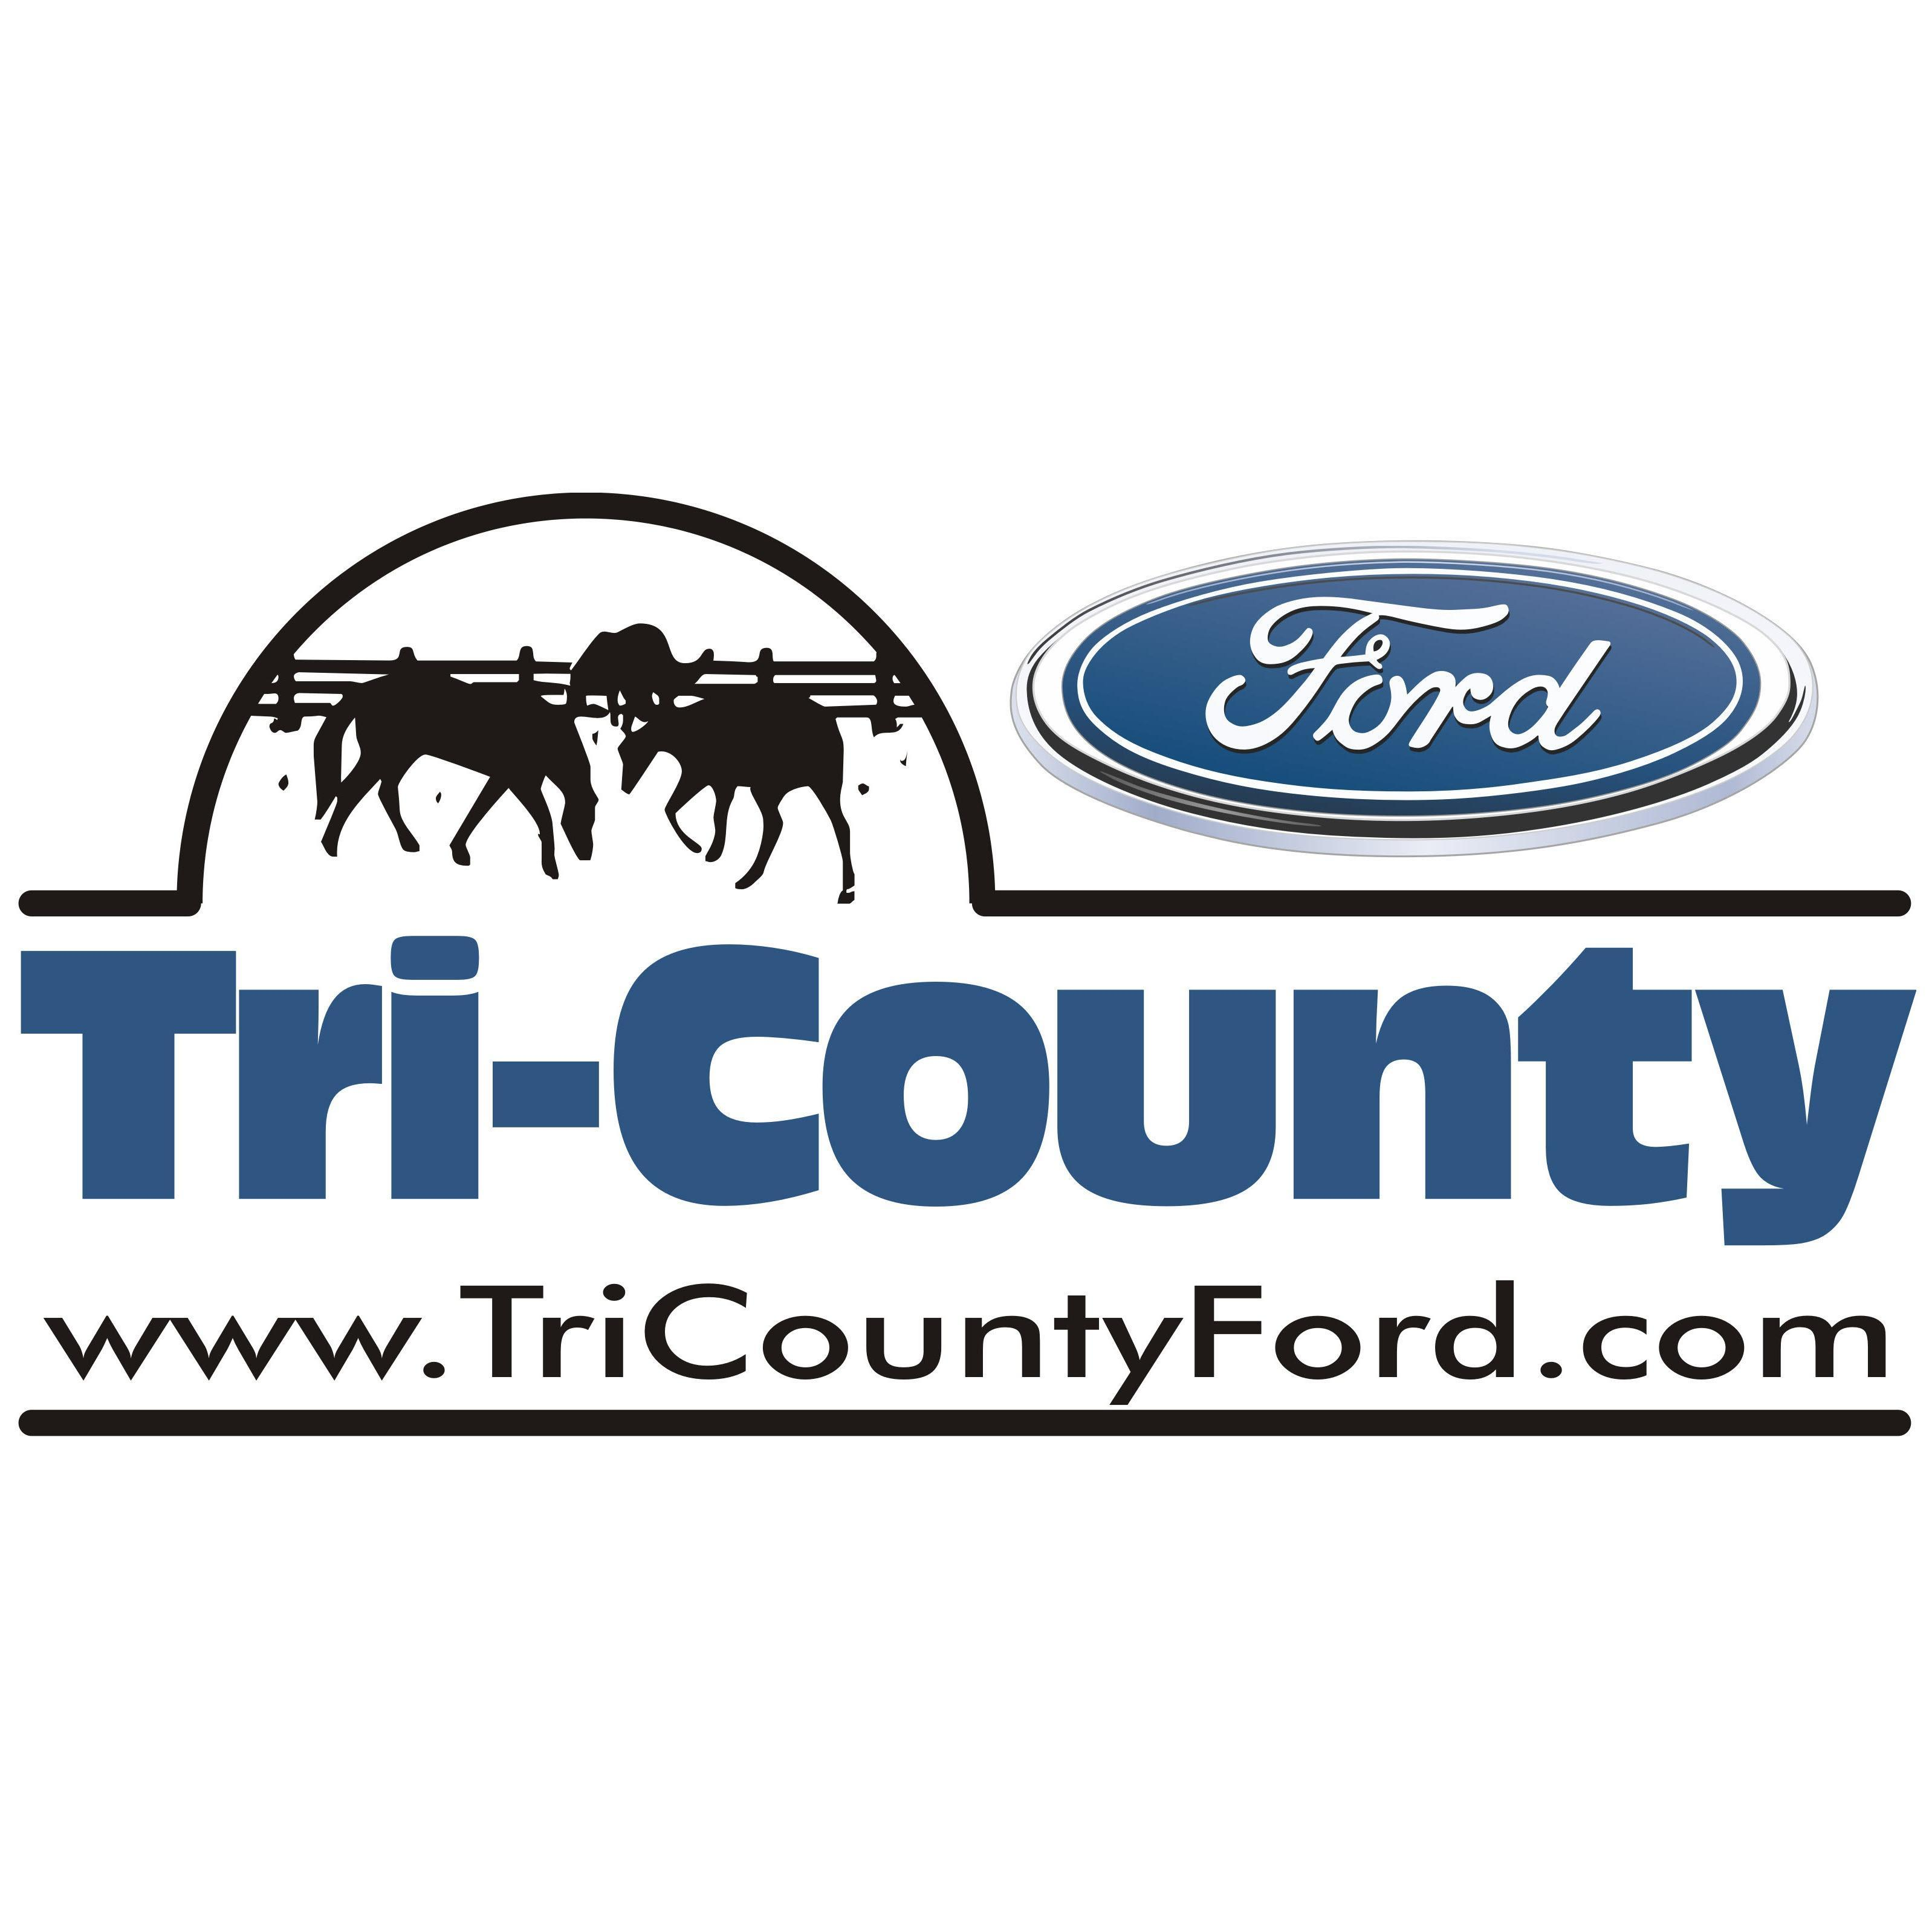 image of the Tri-County Ford